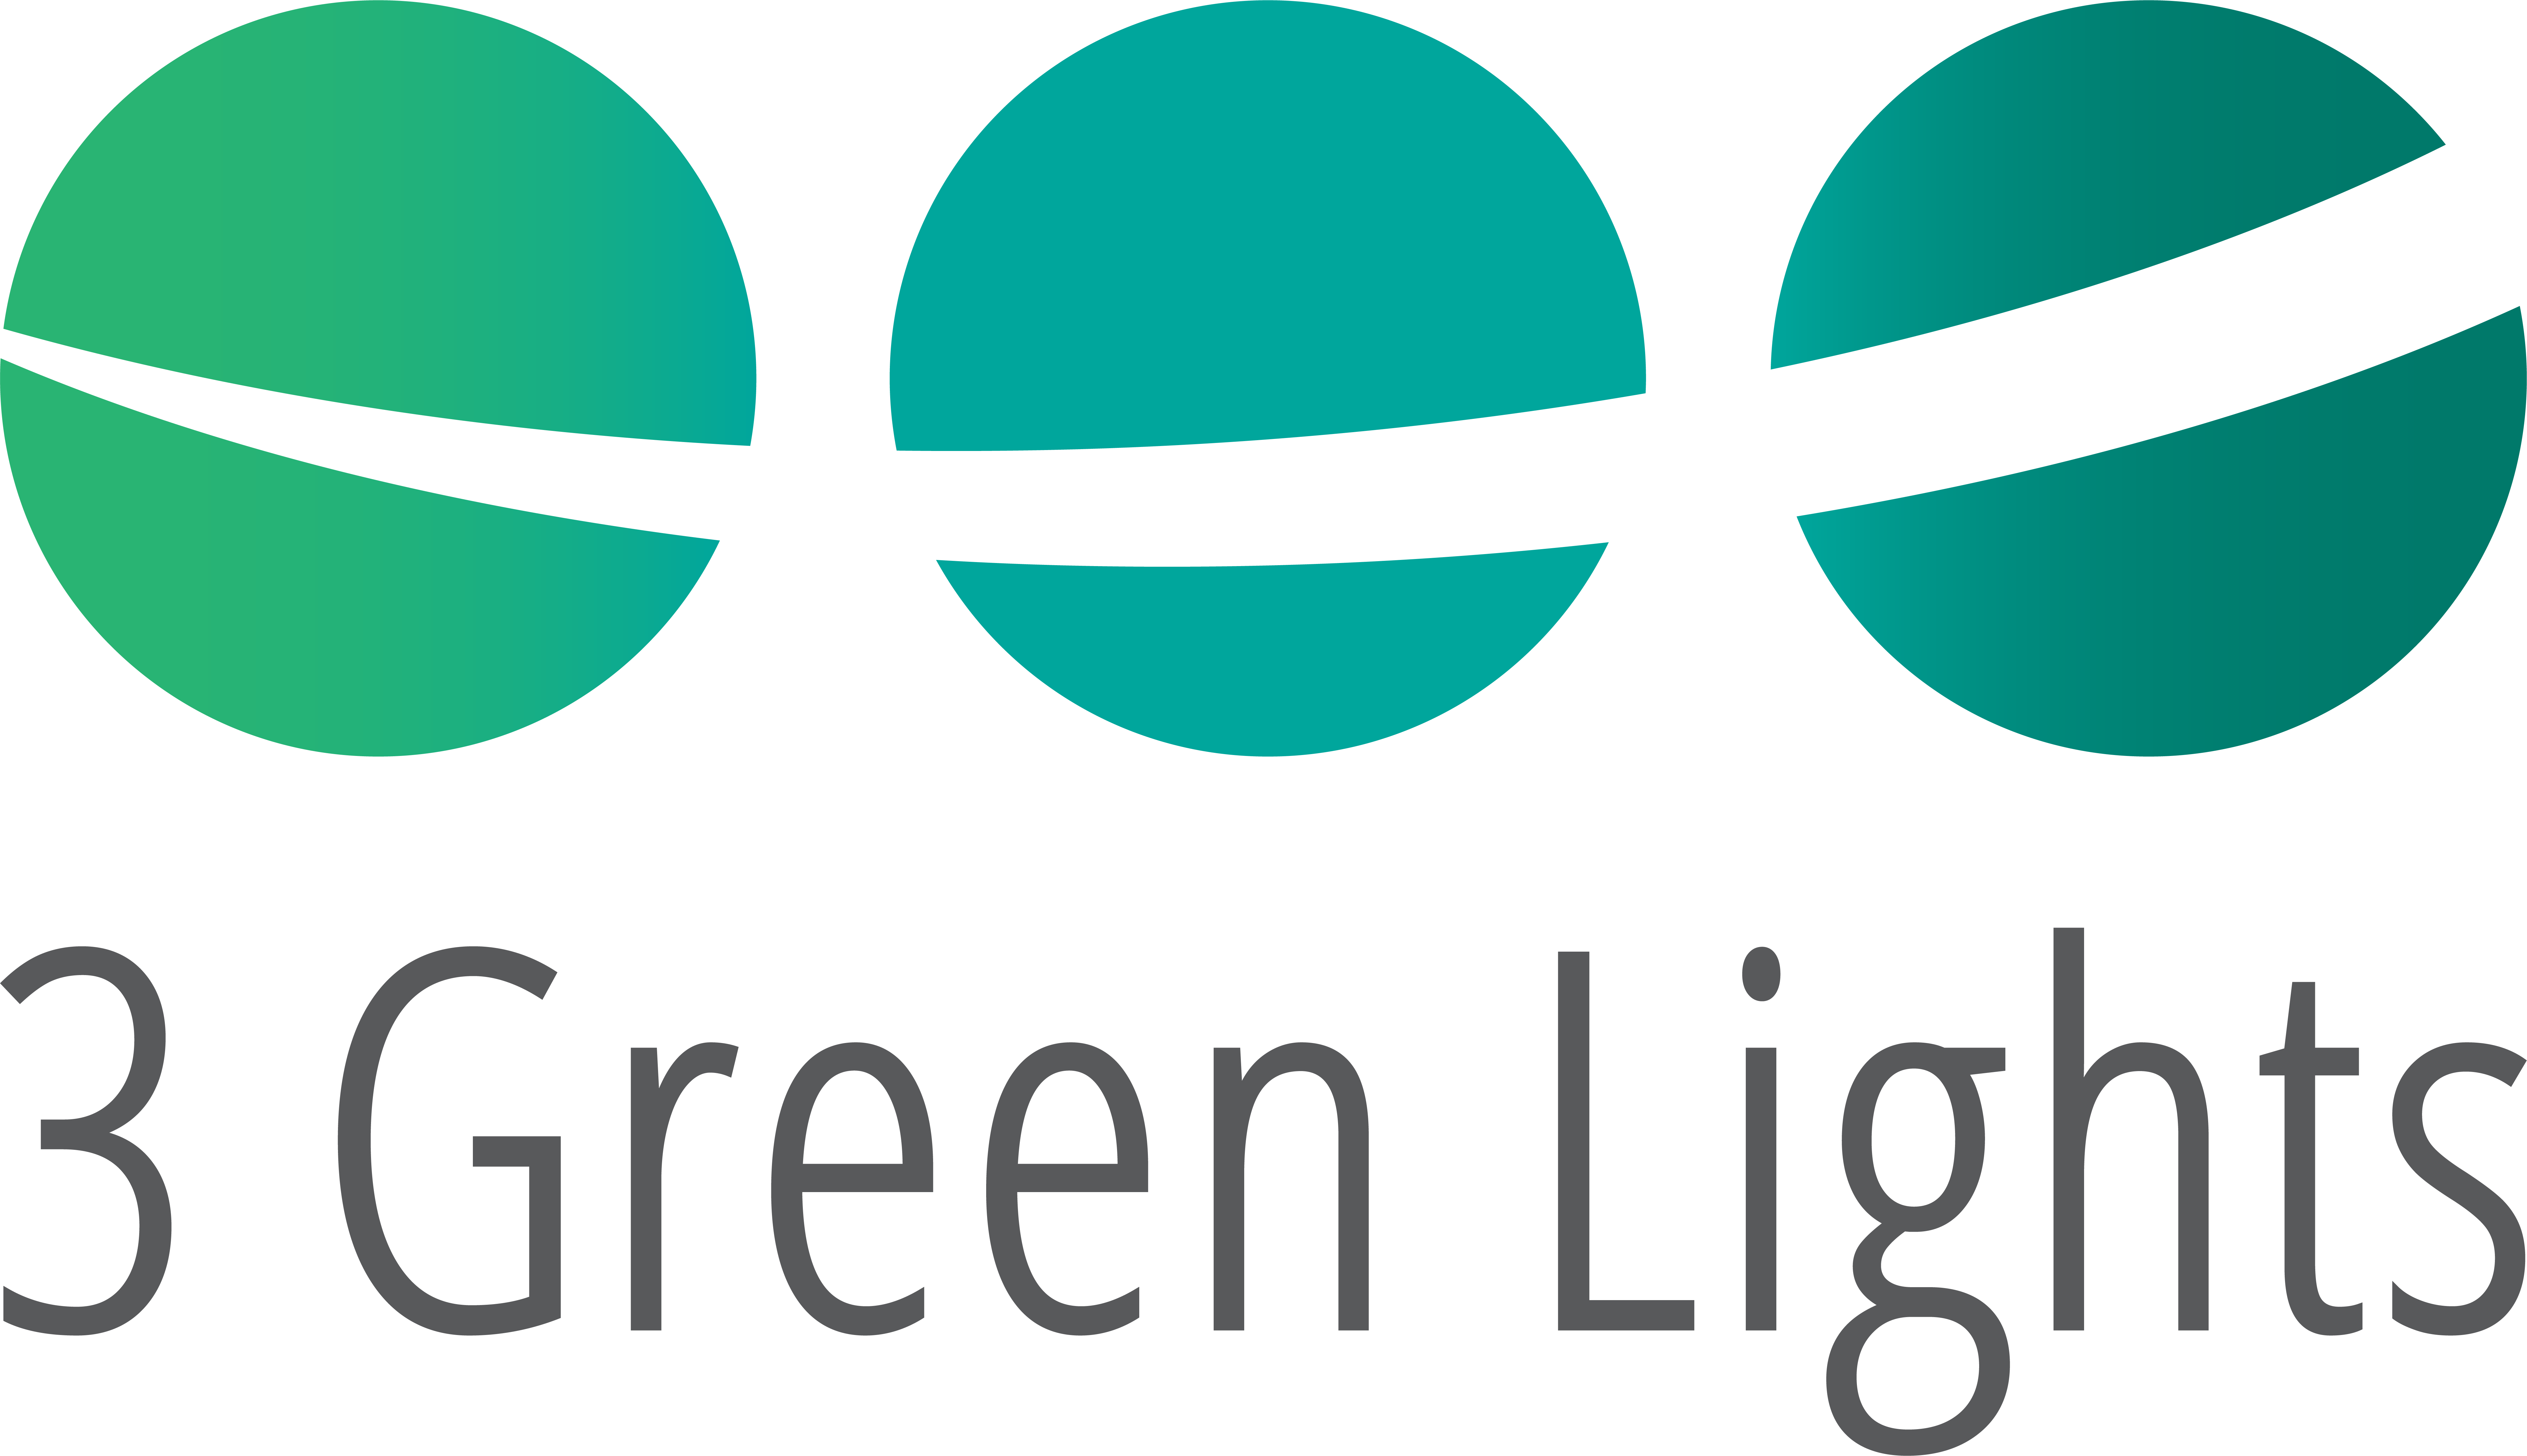 3 GREEN LIGHTS  logo